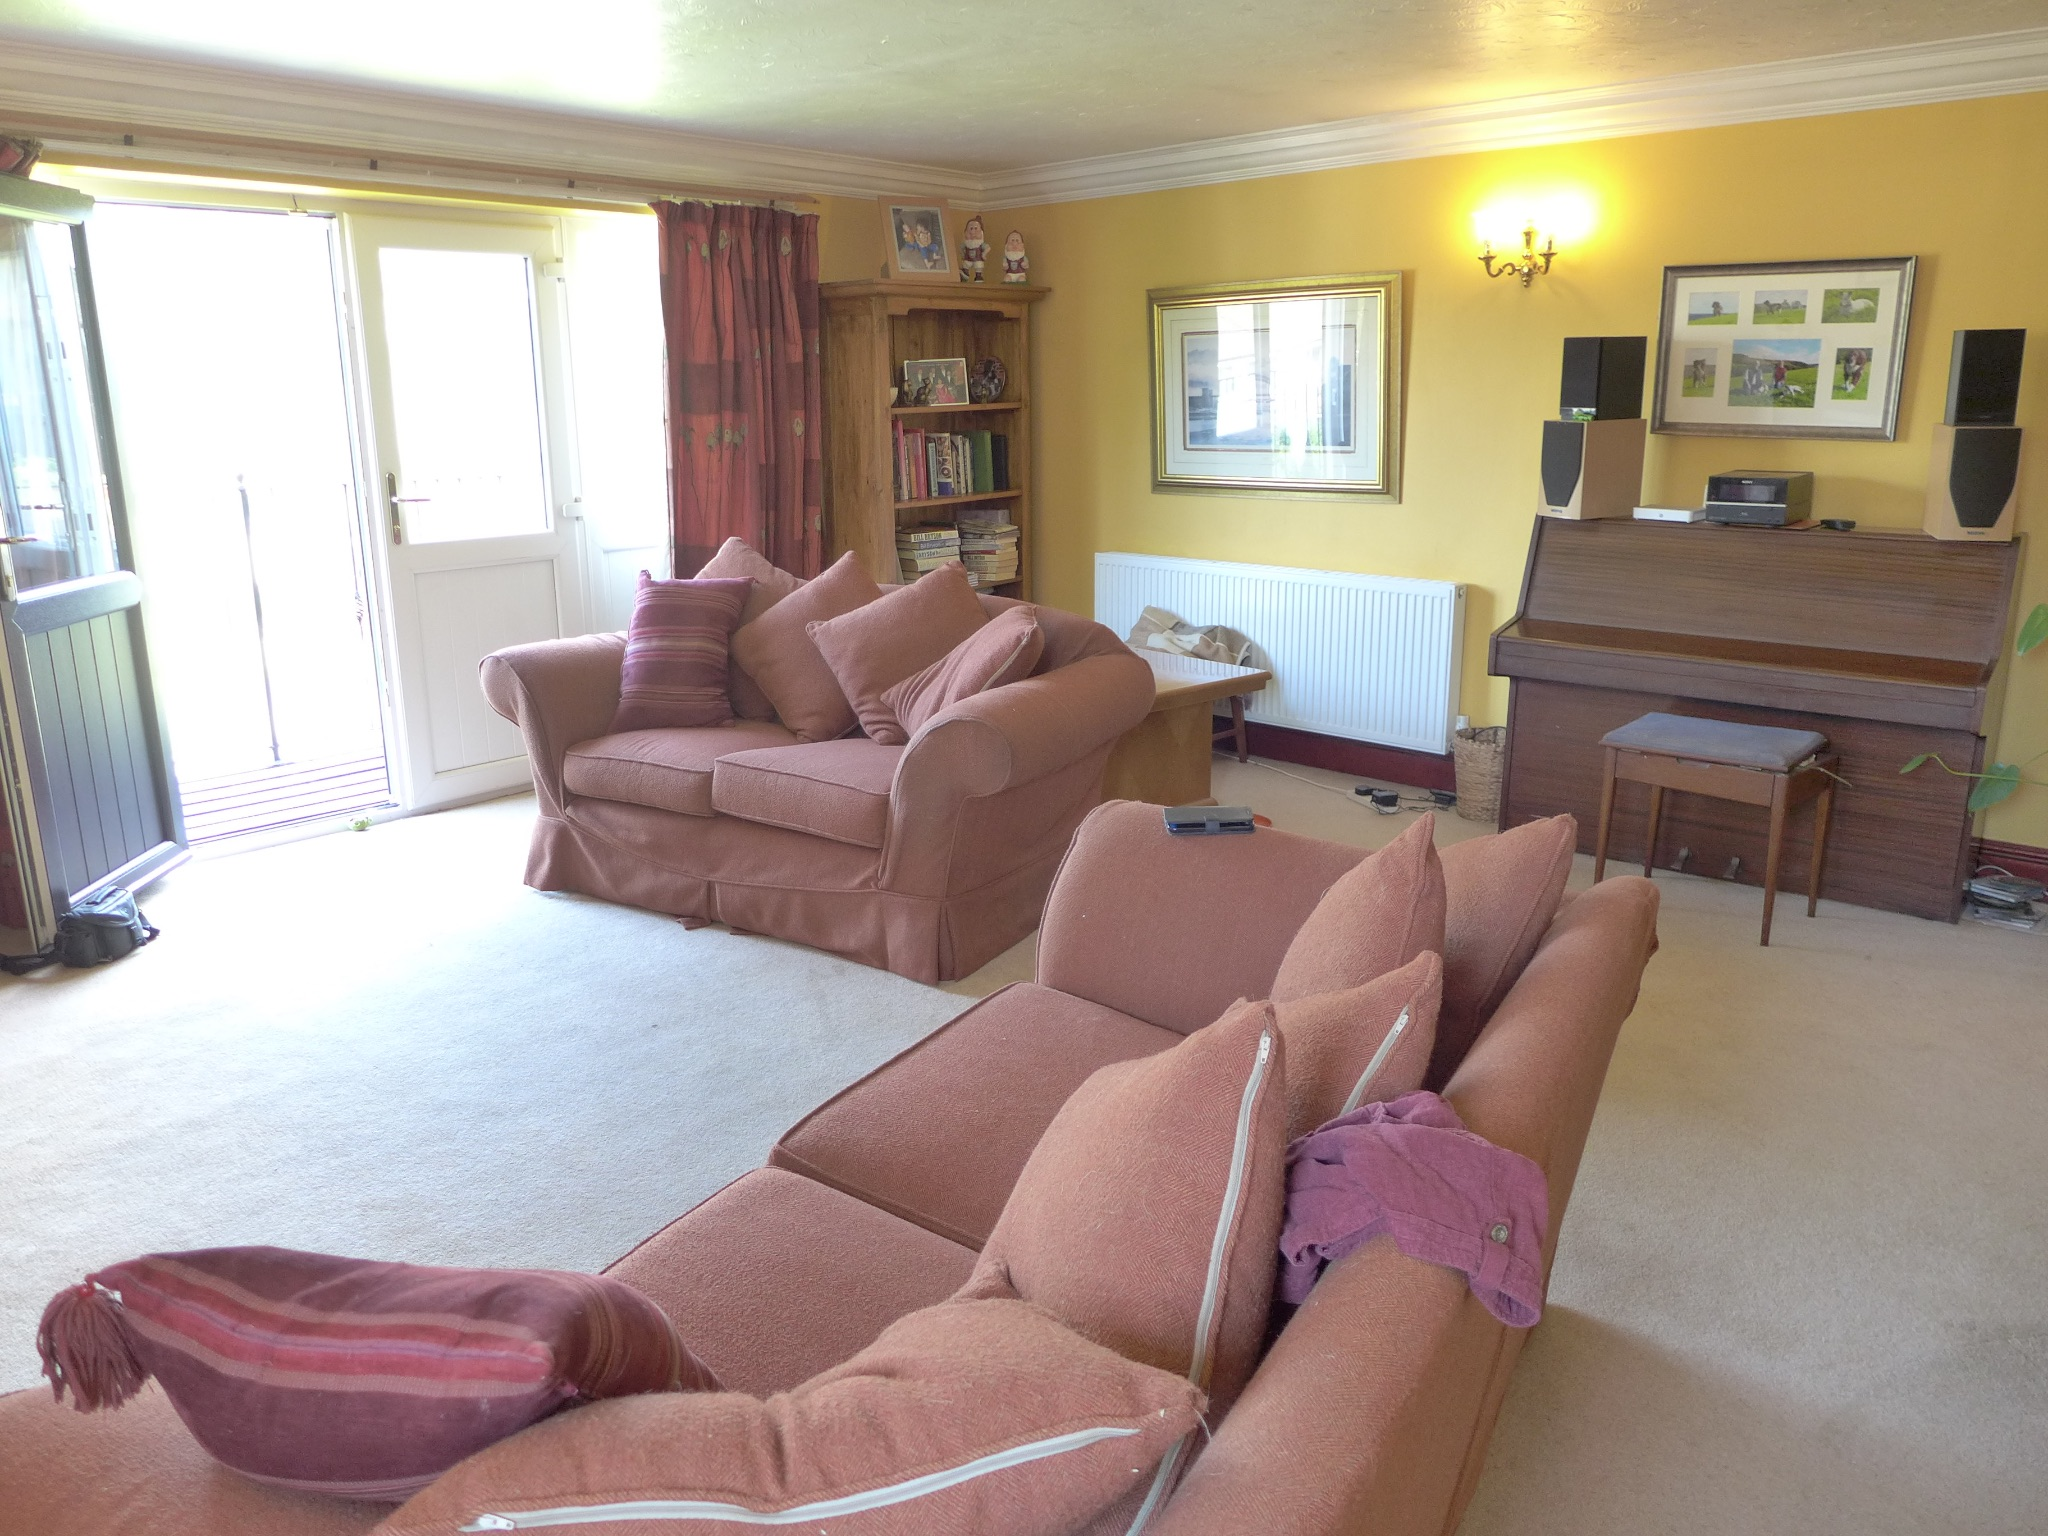 4 bedroom detached house For Sale in Todmorden - Photograph 4.